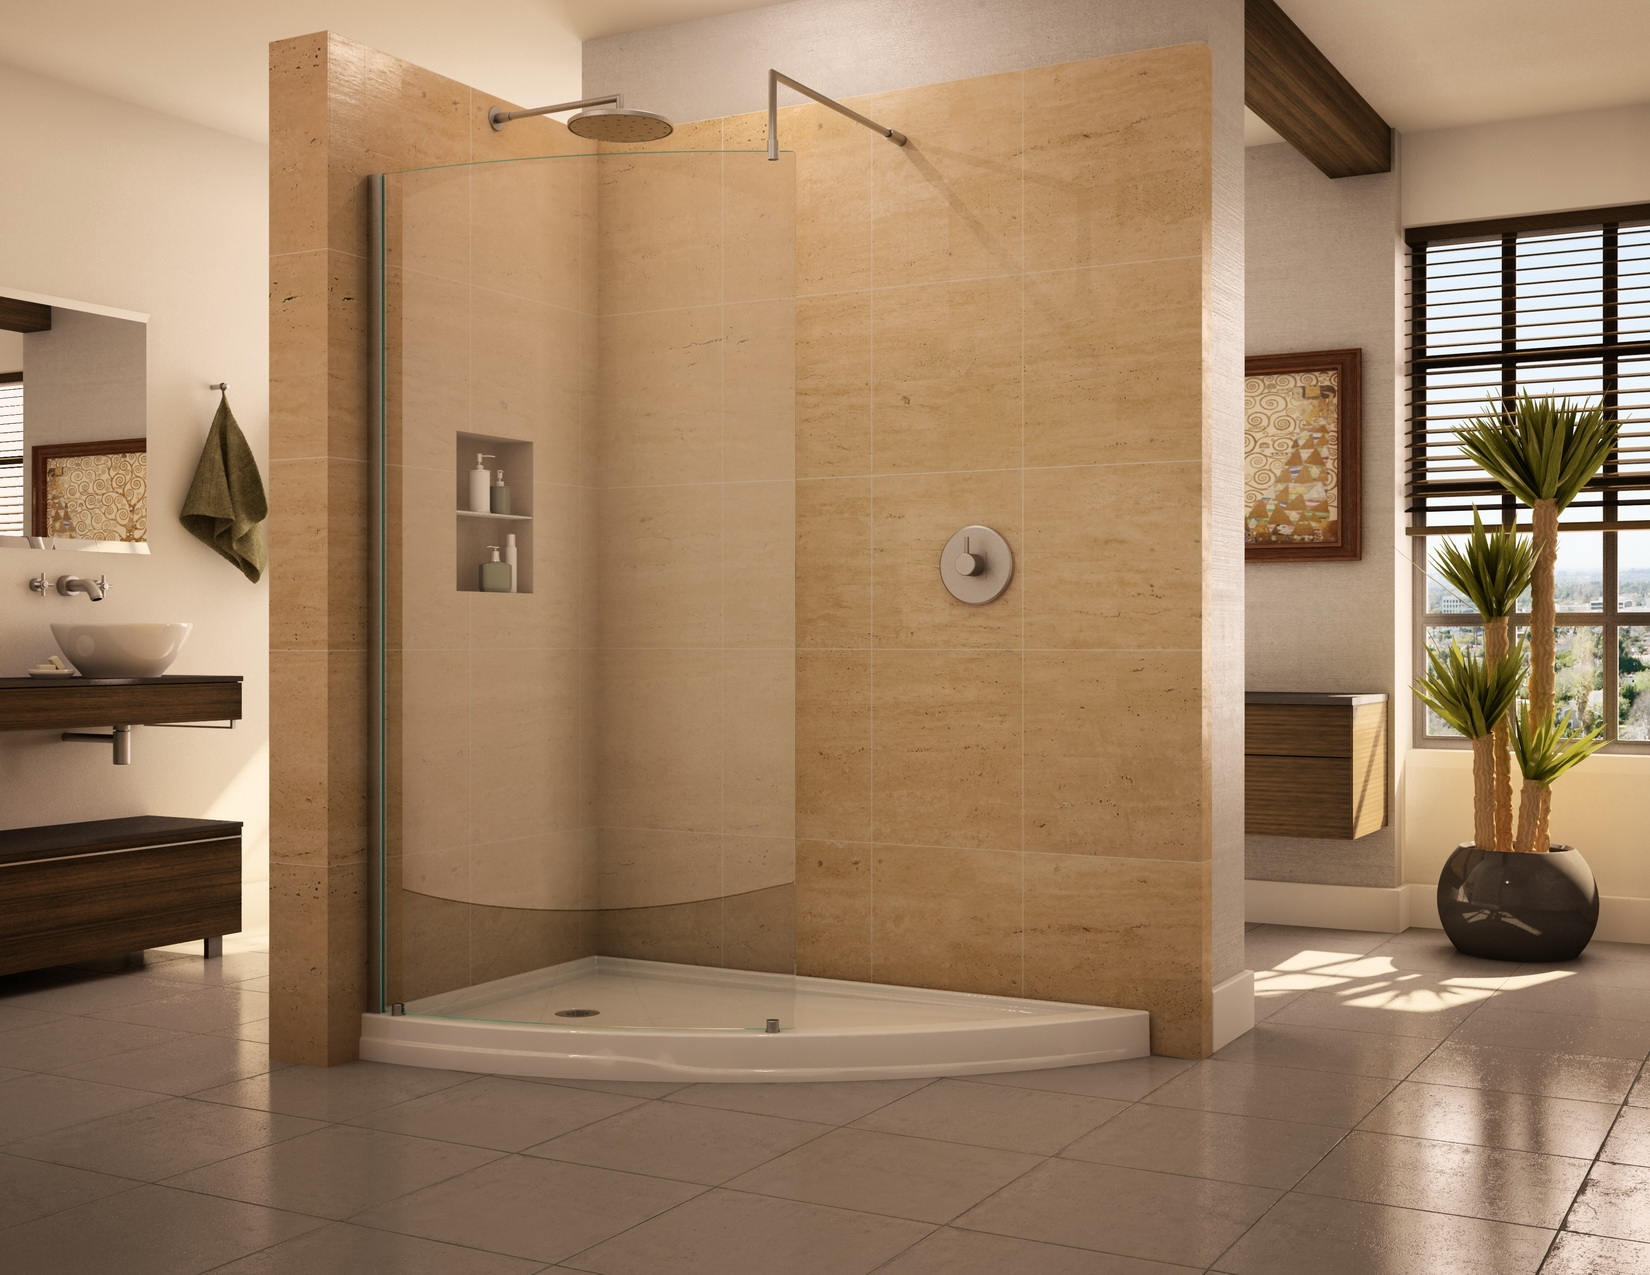 Best Use similar but slightly different materials for the shower. walk in showers without doors